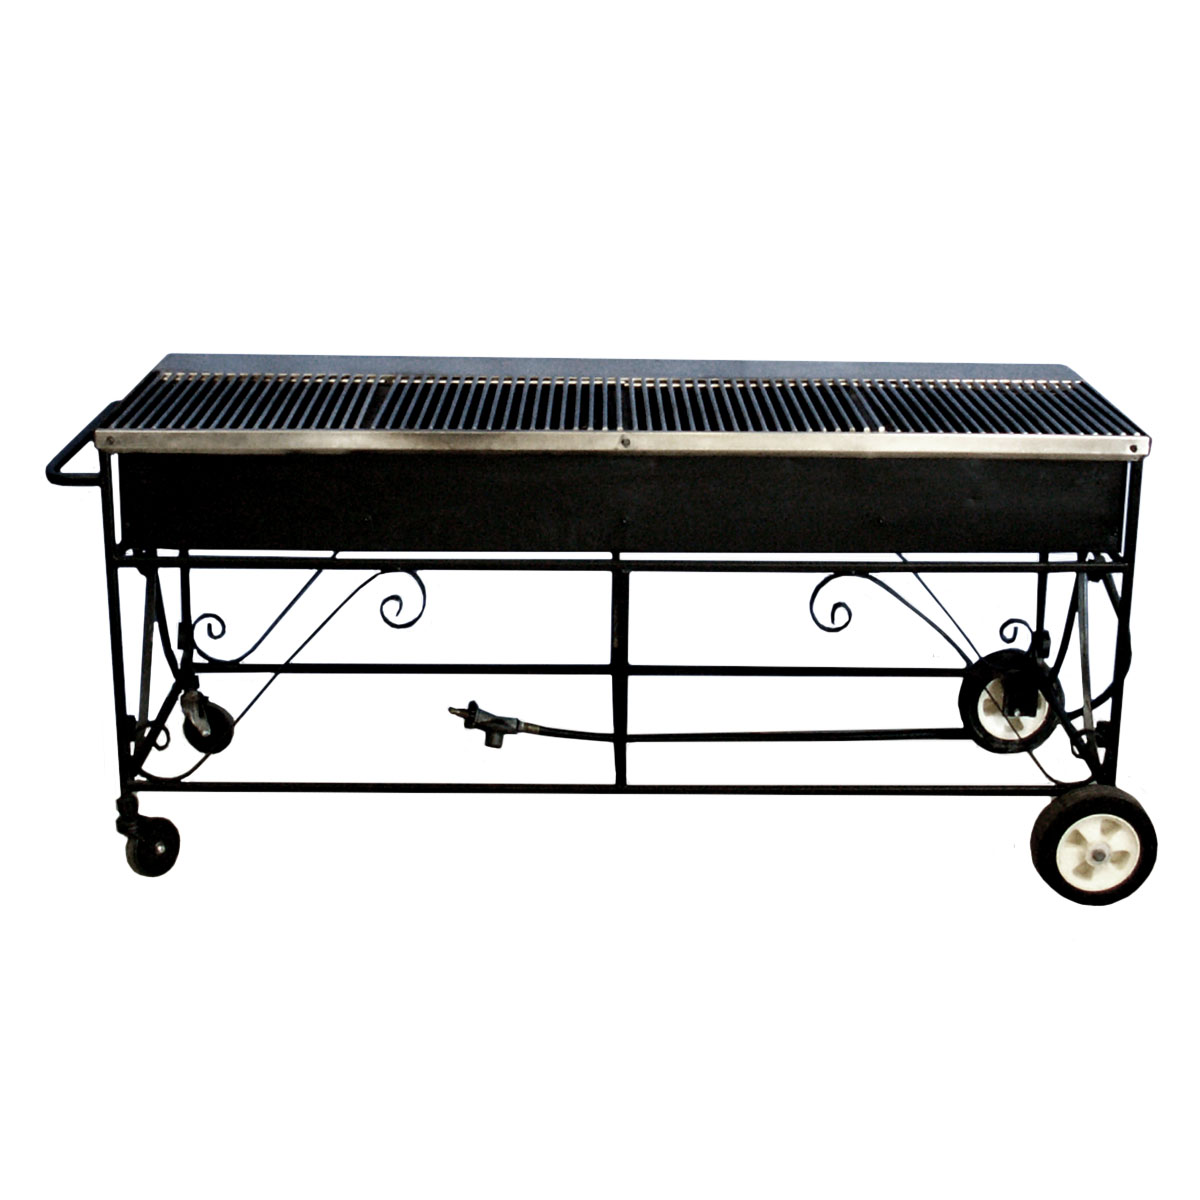 Propane Grill #1 2 x 5 with lava rocks and 20lb Propane Tank